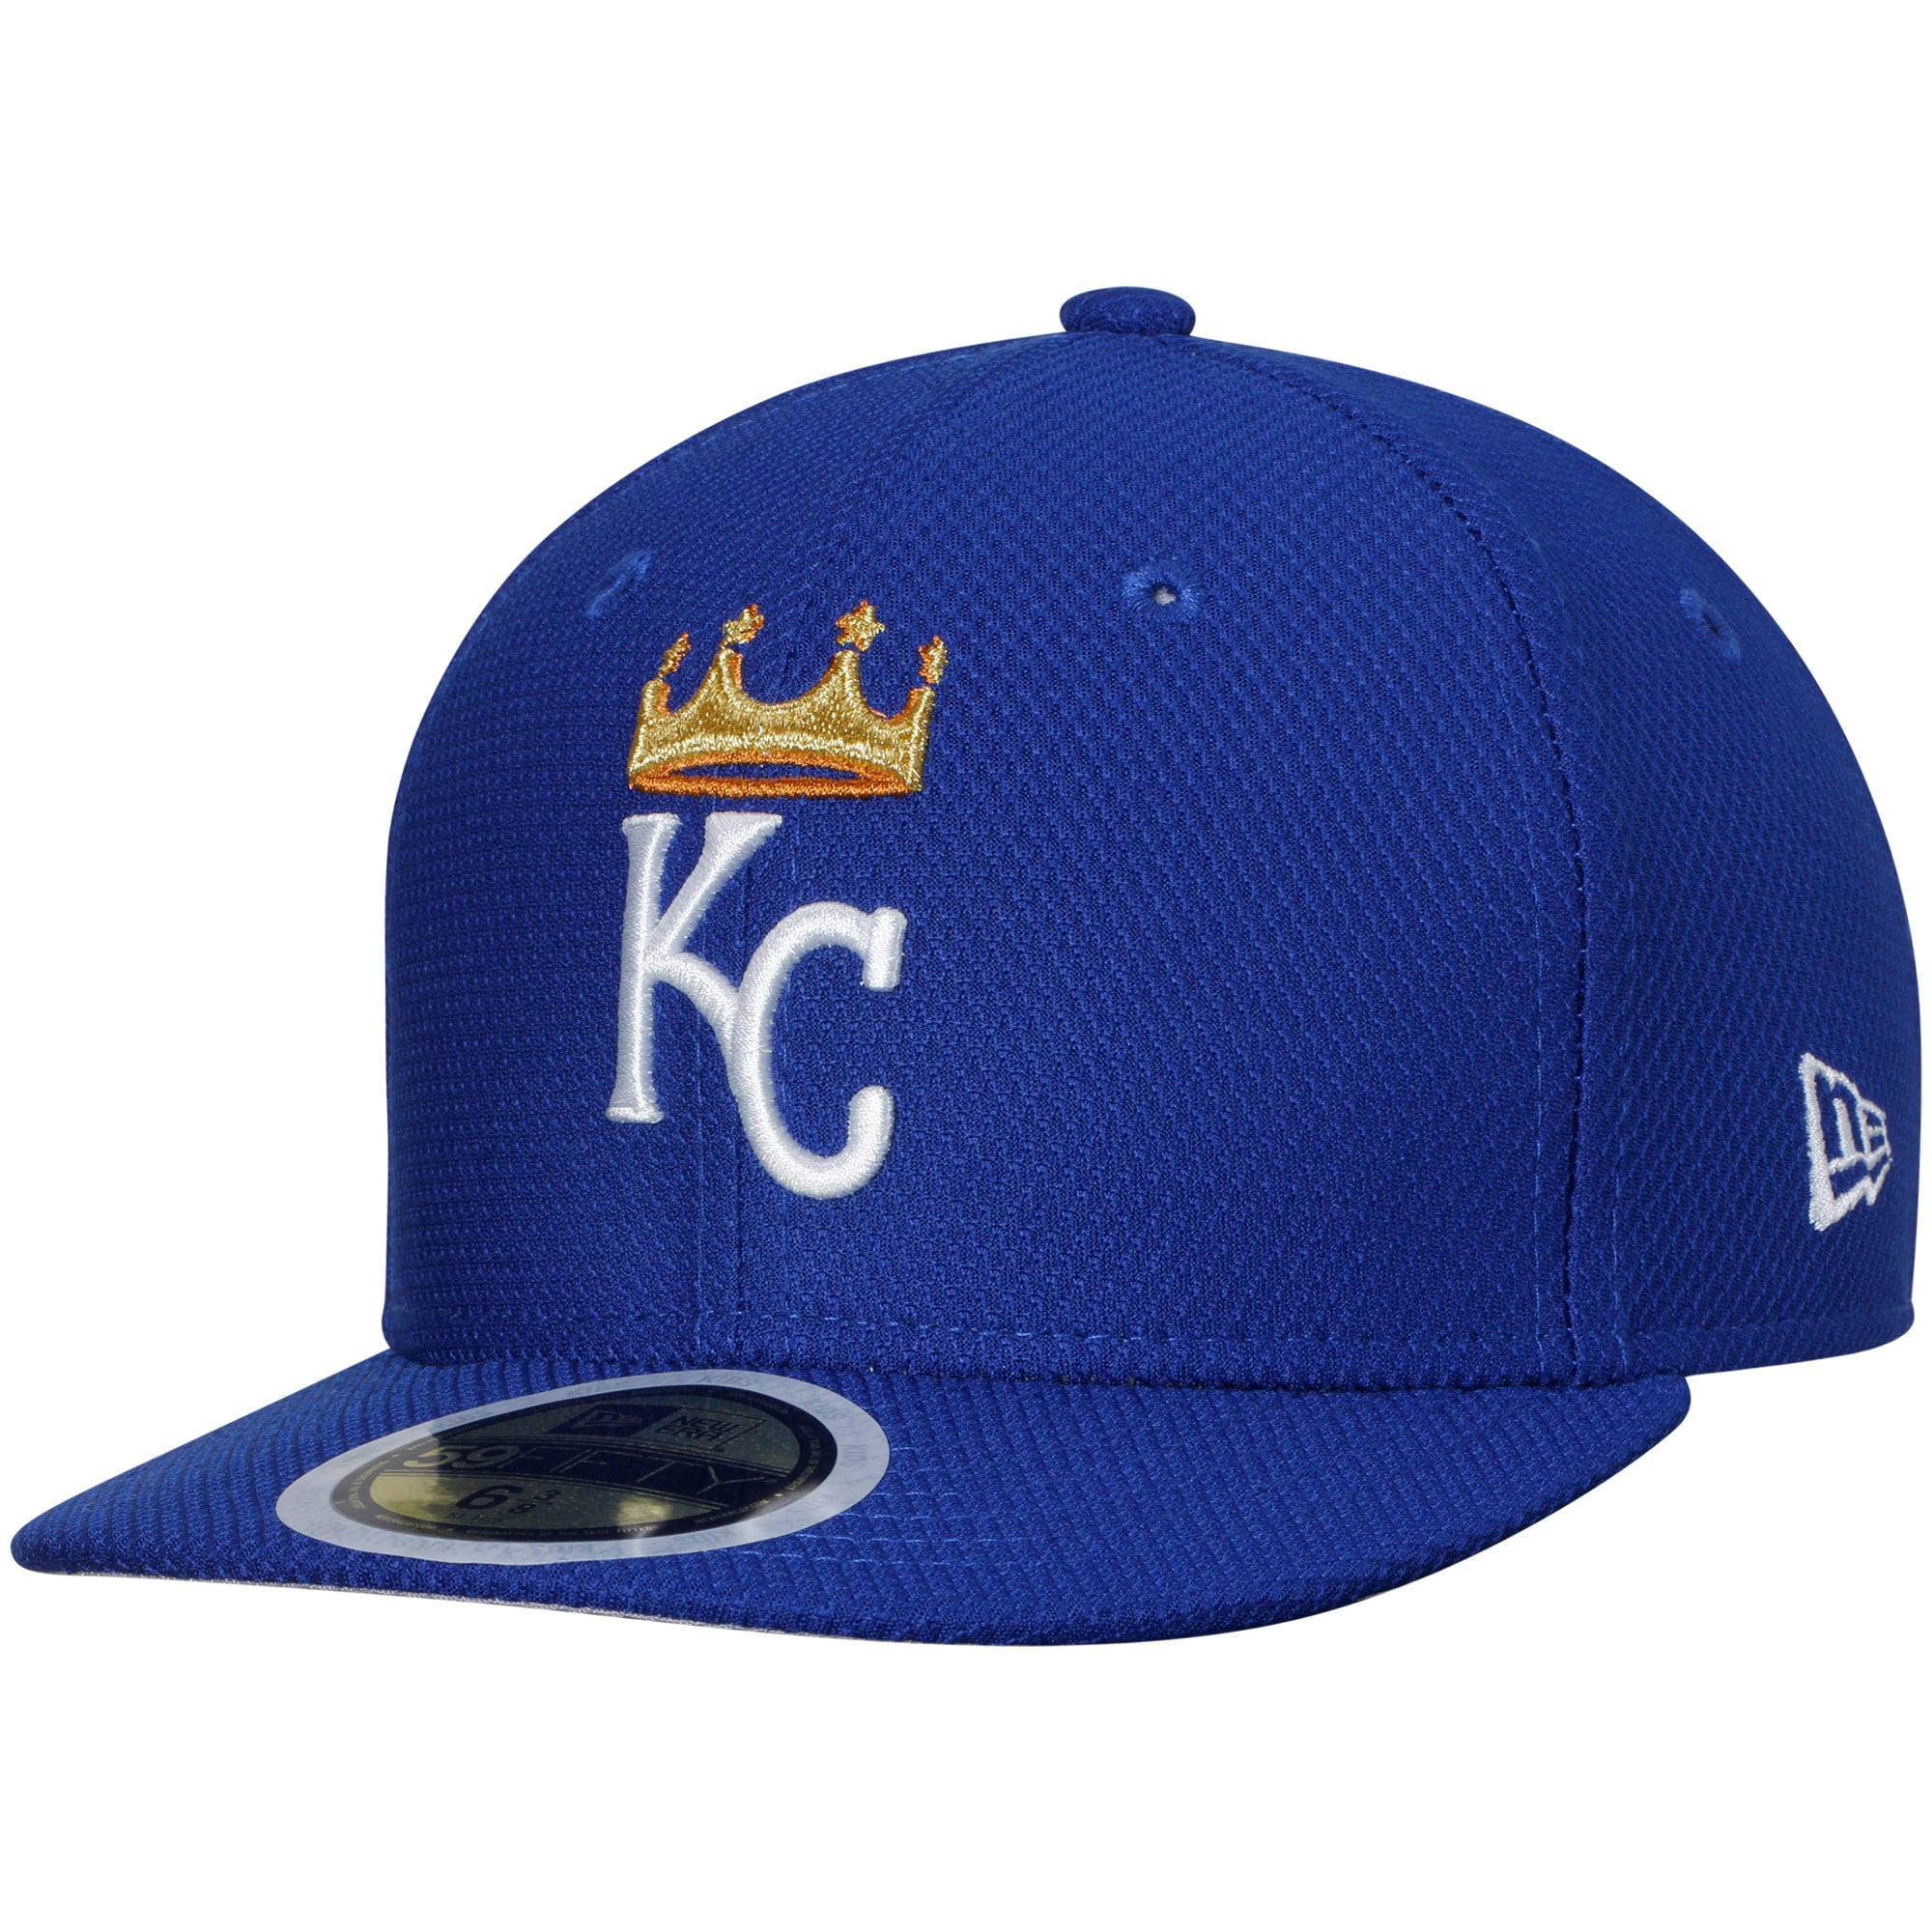 Kansas City Royals New Era Youth Diamond Era 59FIFTY Fitted Hat - Royal